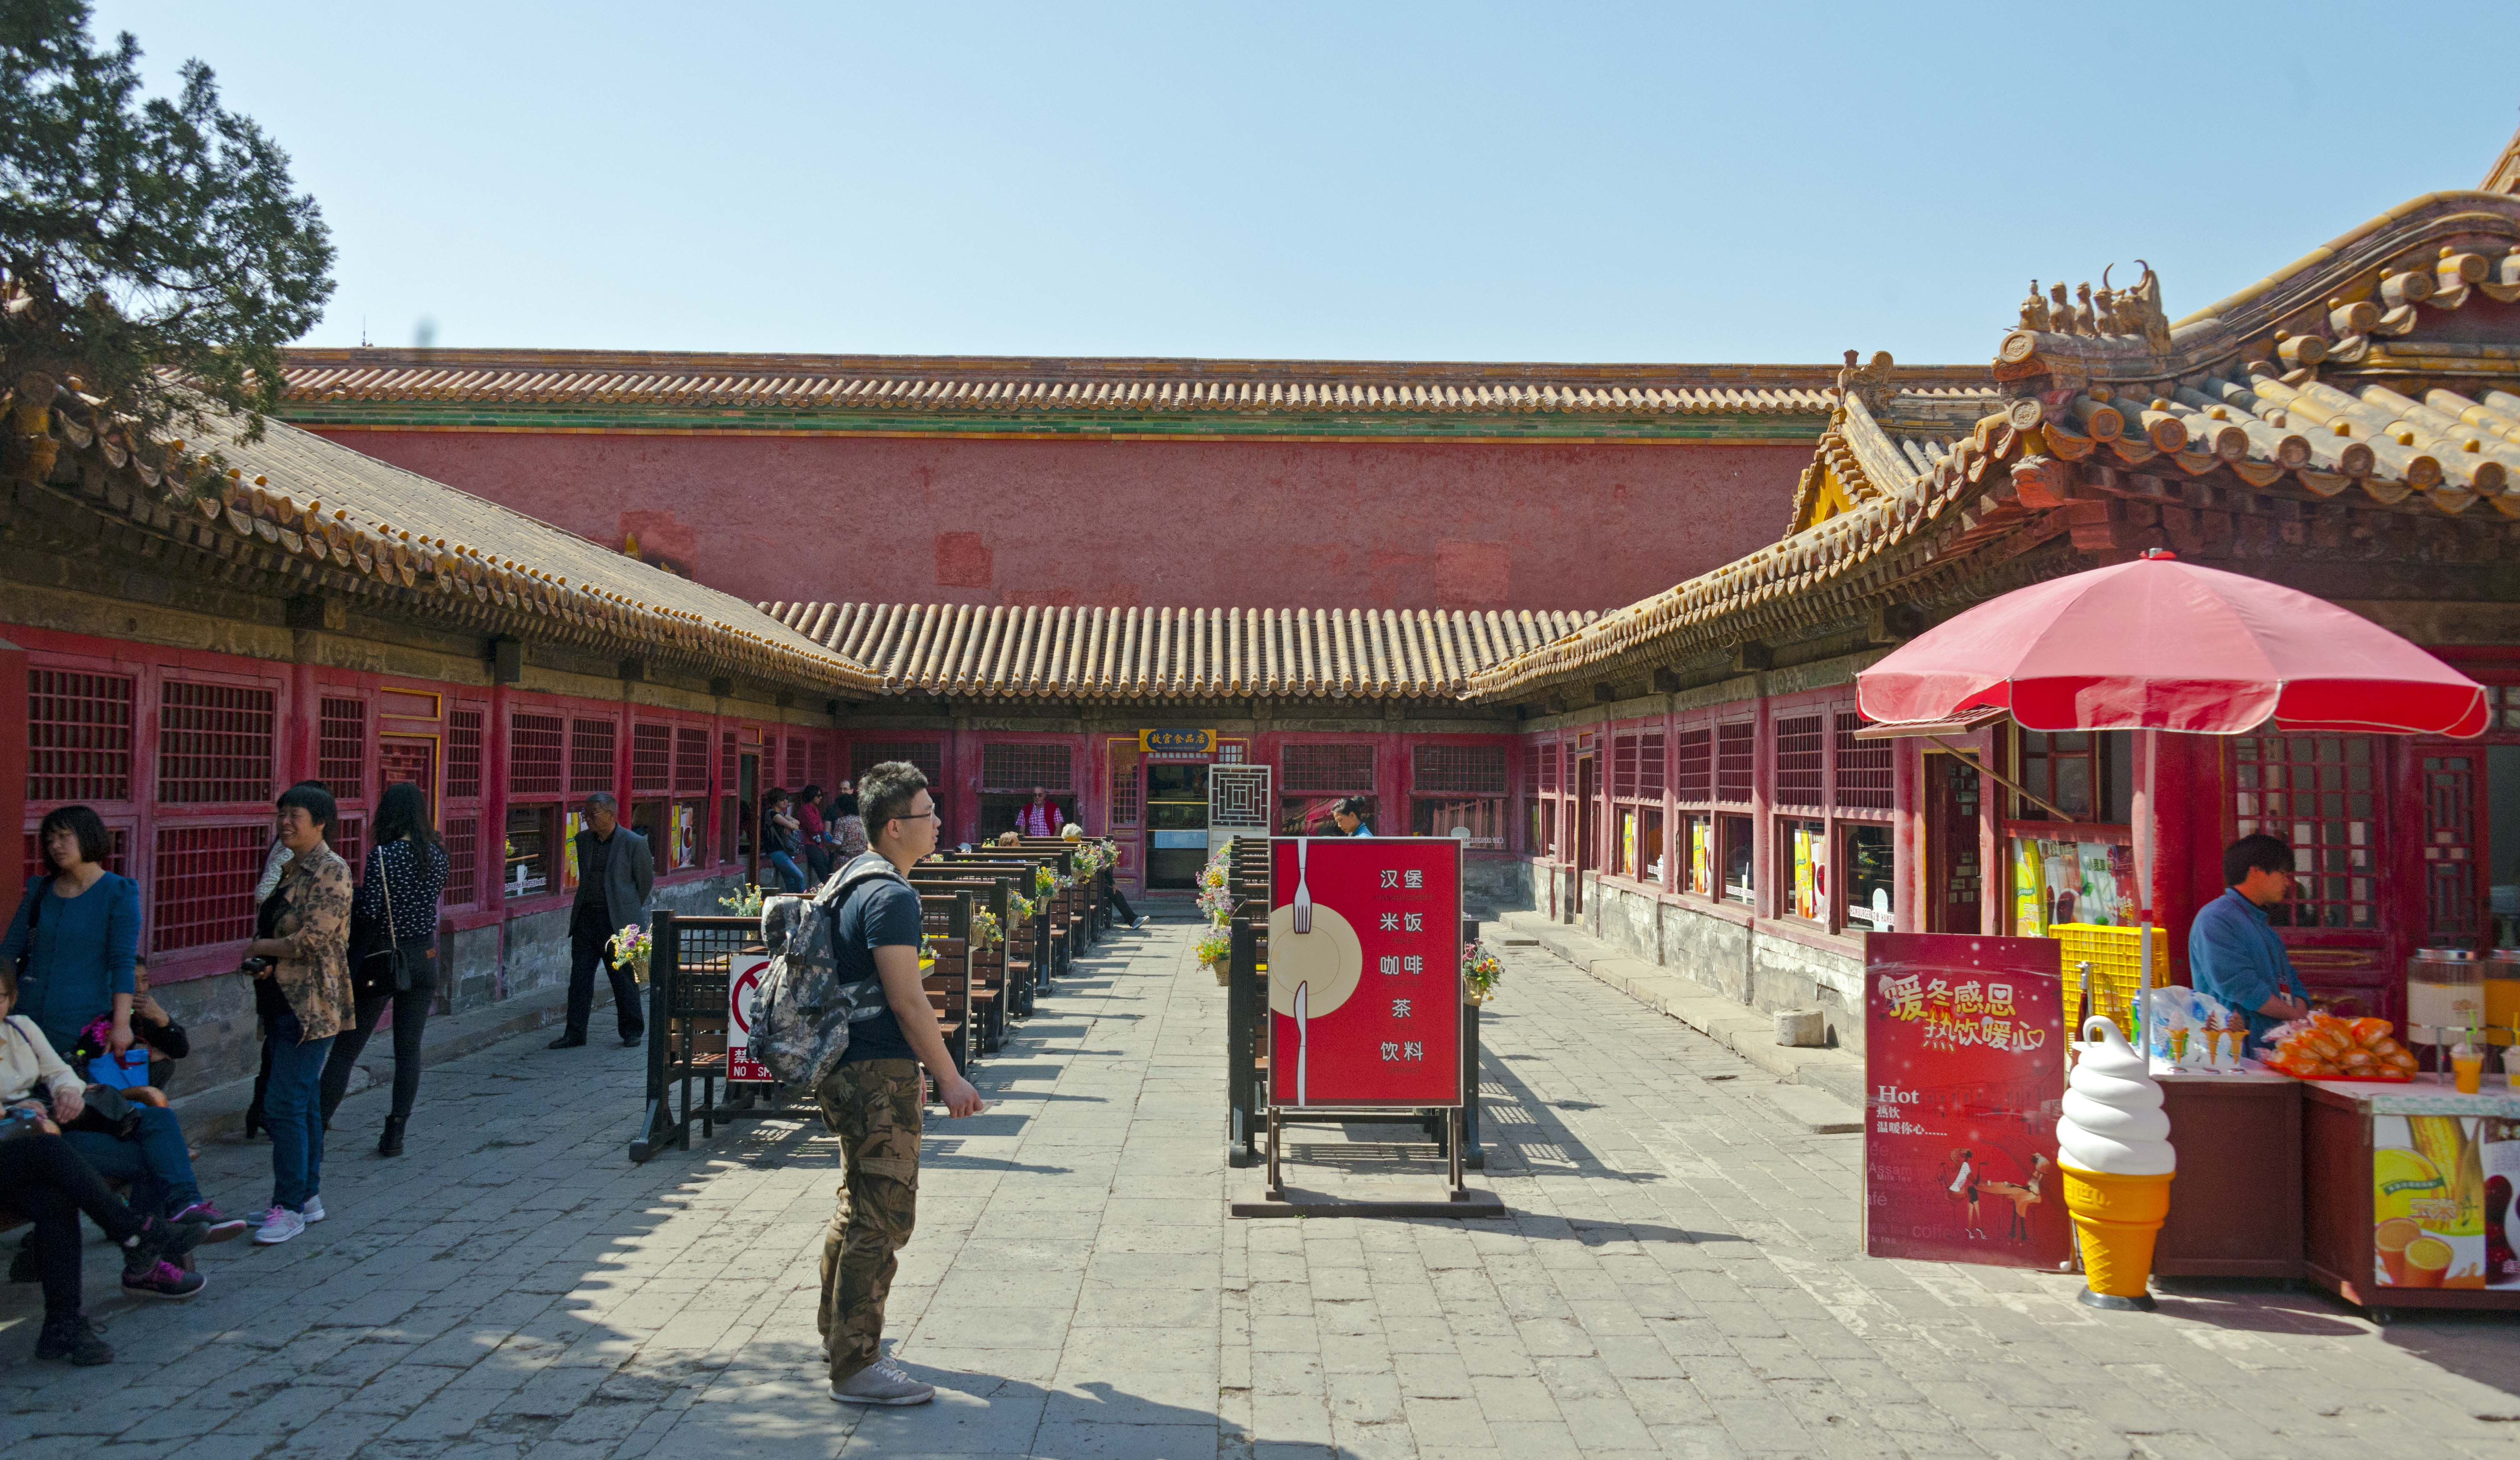 history of the forbidden city In this forbidden city walking tour, we join a scholar of chinese history to explore the history and symbolism of beijing's most important monument.